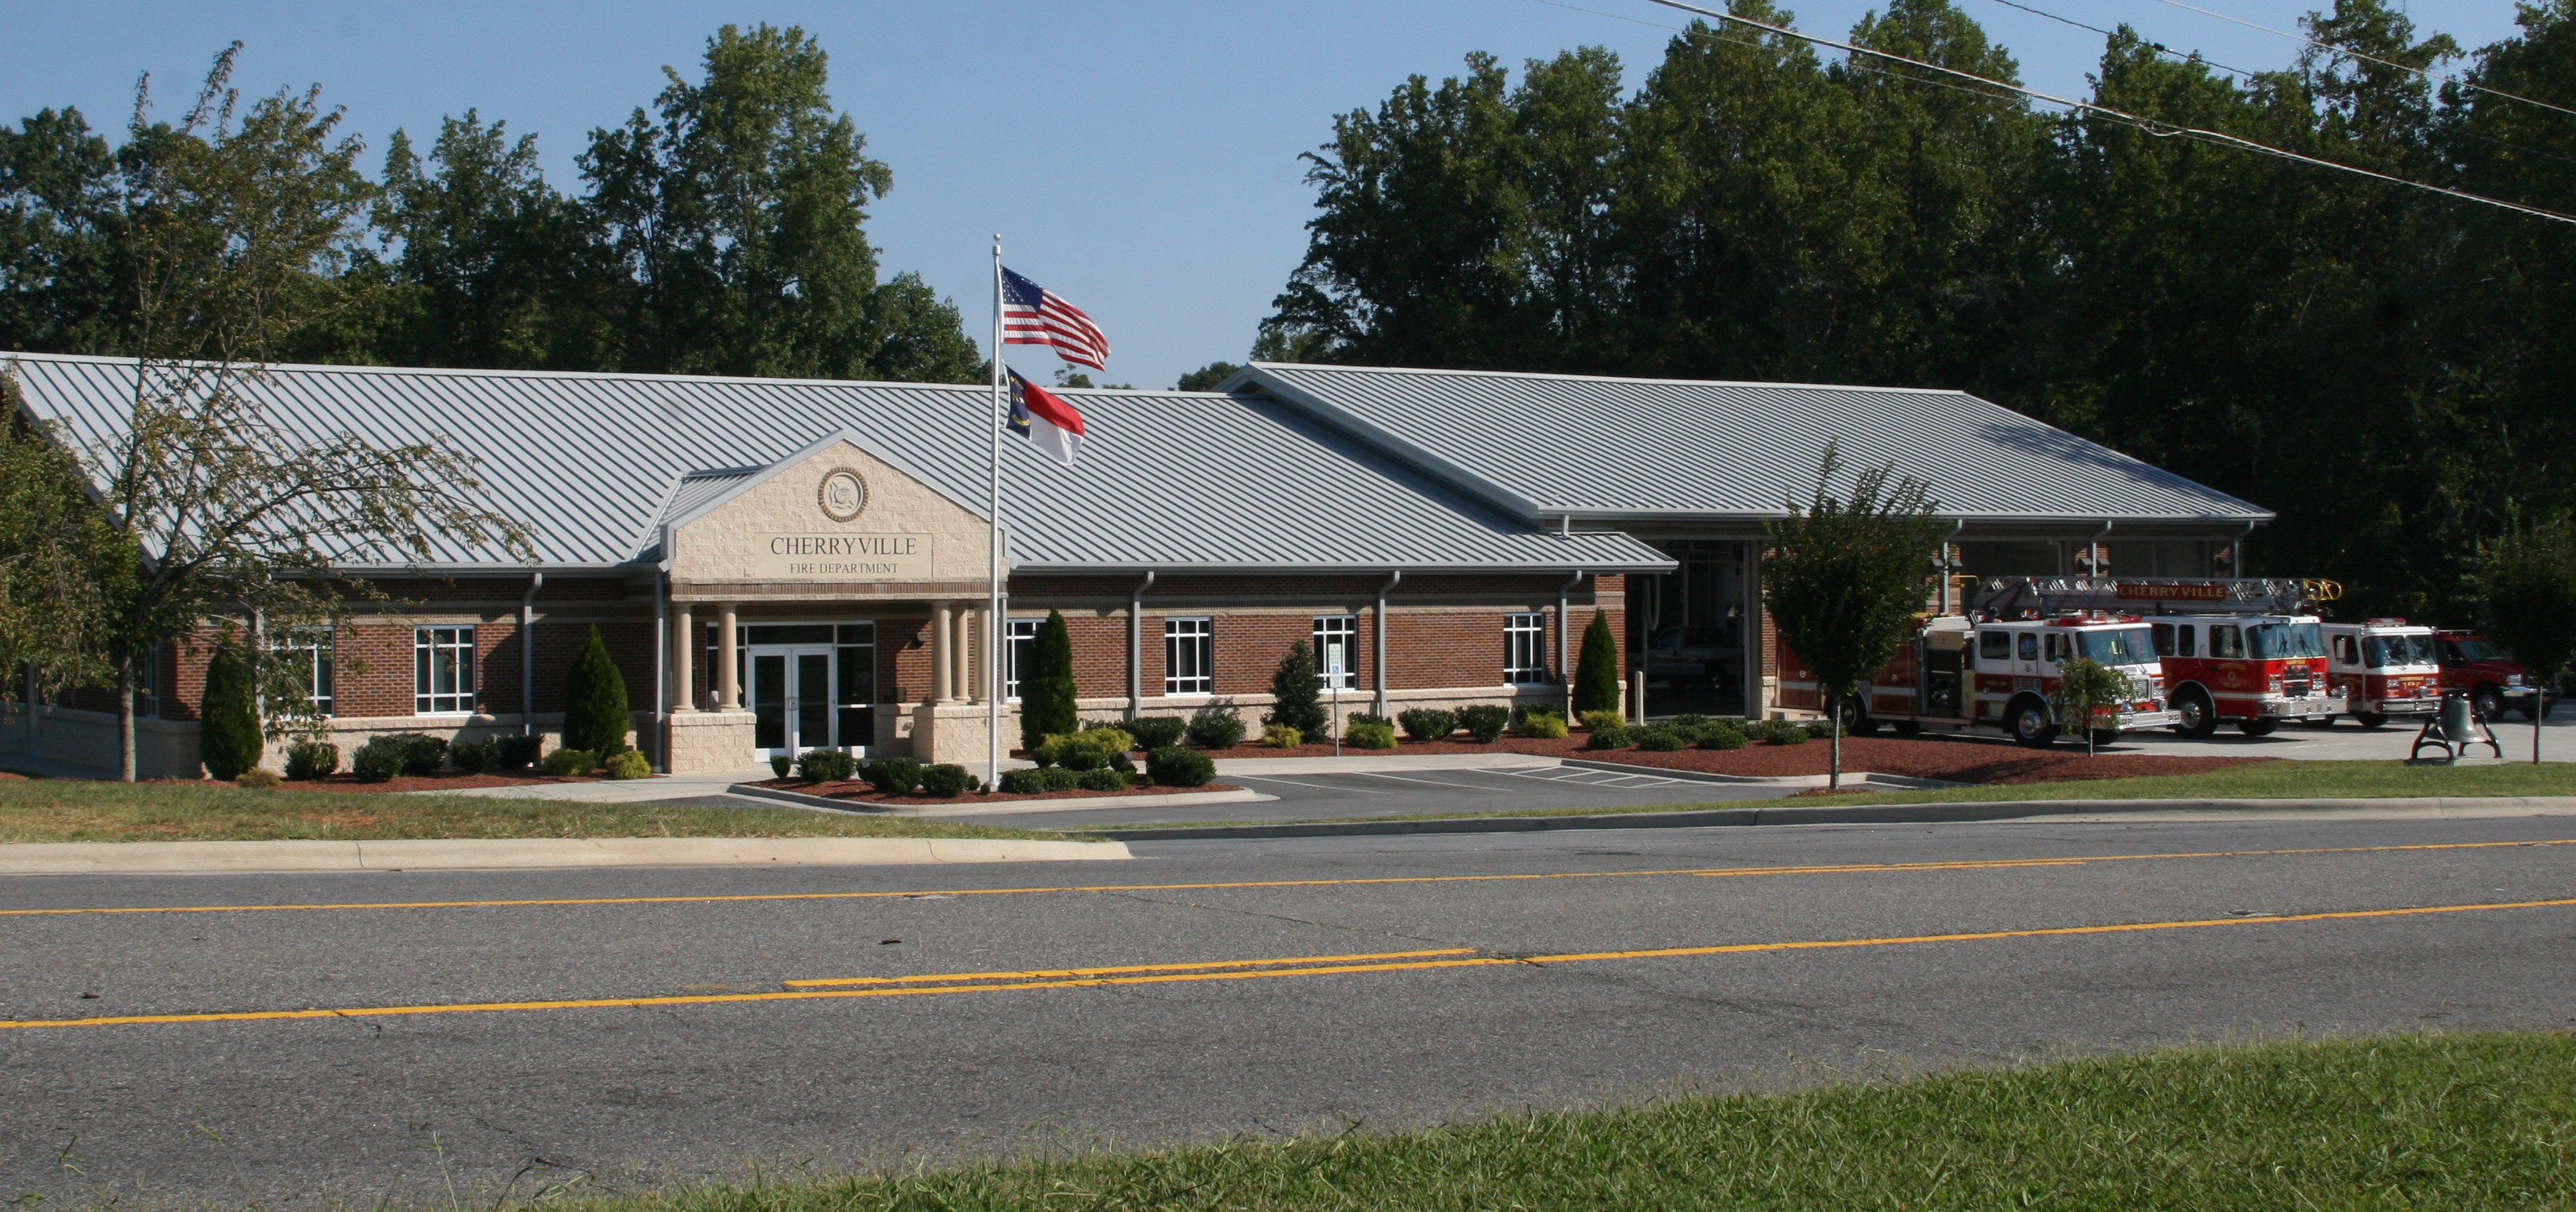 Cherryville Fire Department